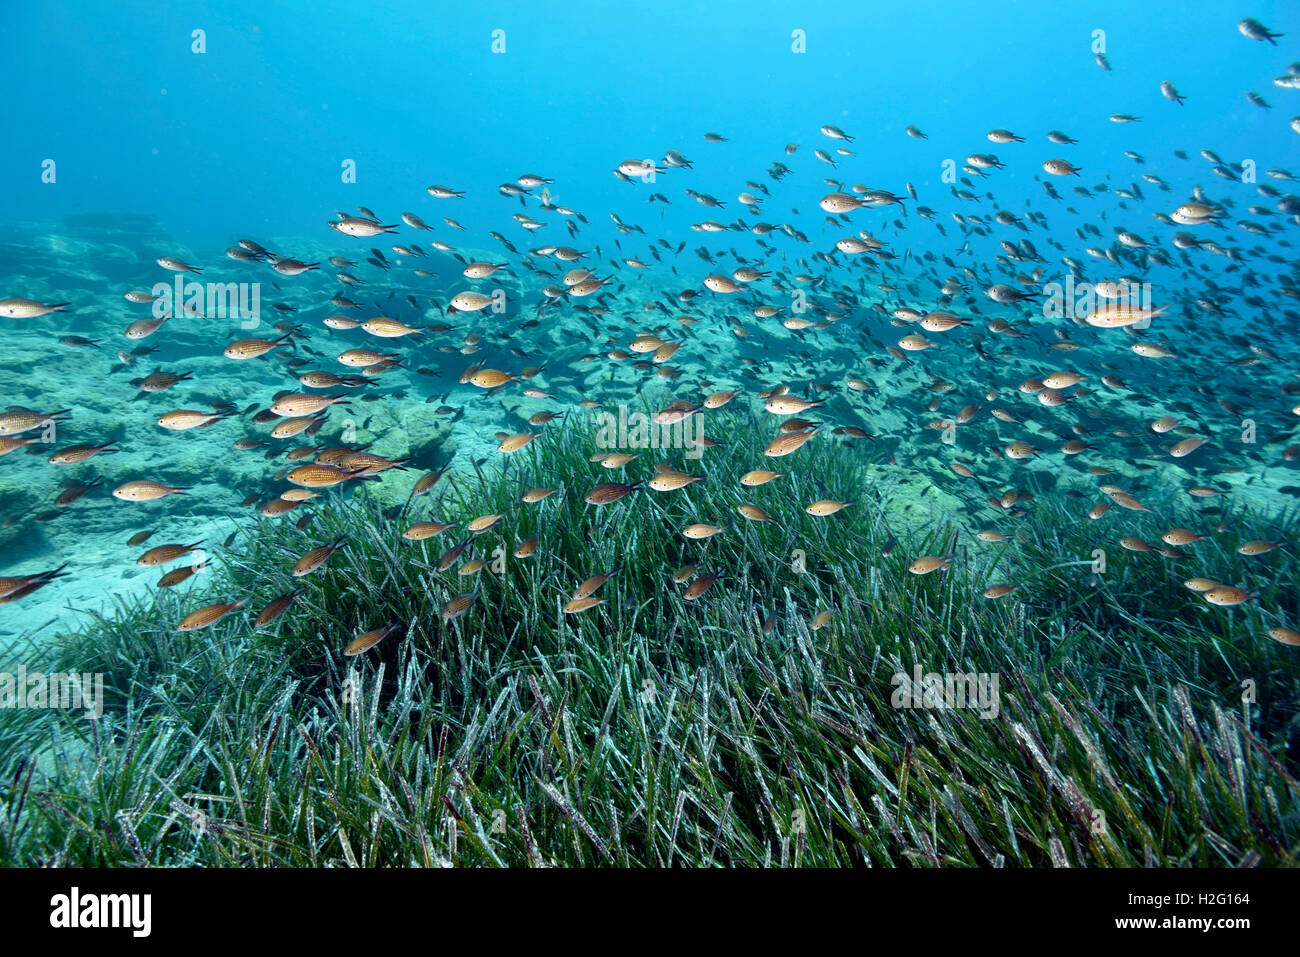 Neptune seagrass meadow, Posidonia oceanica, and damsel fishes, Chromis chromis, Bodrum Turkey - Stock Image